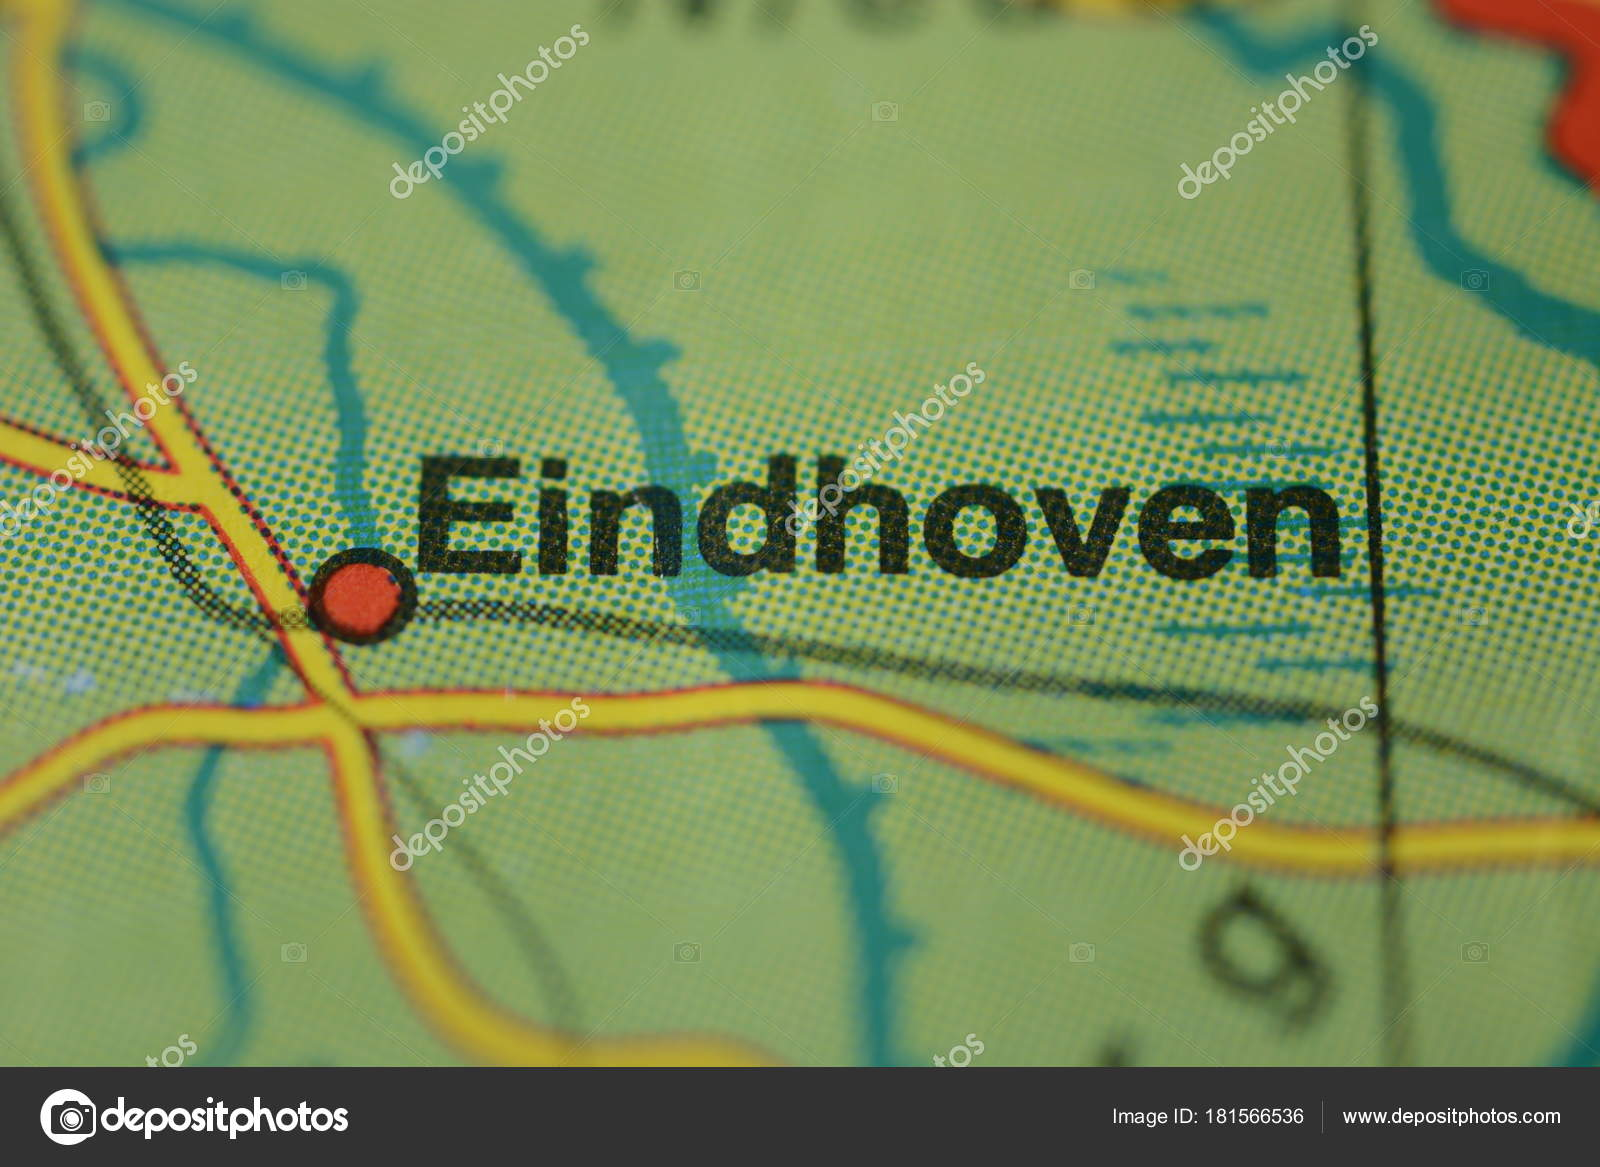 City Name Eindhoven Netherlands Map — Stock Photo © photographer-20 ...